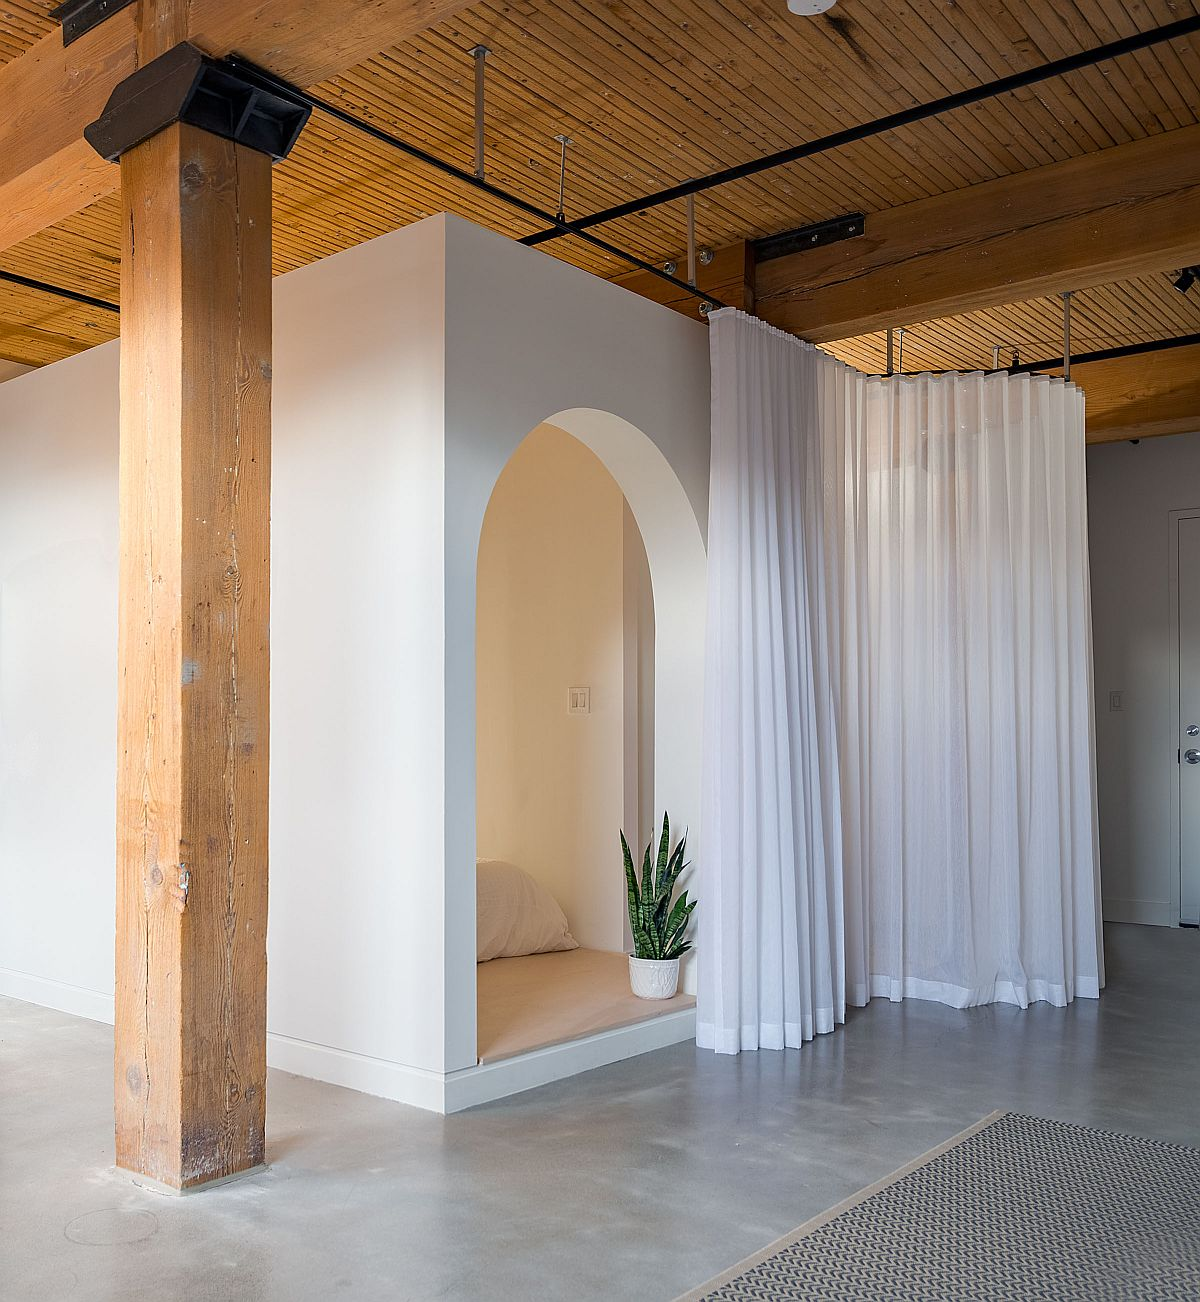 White-drapes-slide-across-to-give-those-inside-the-bedroom-ample-privacy